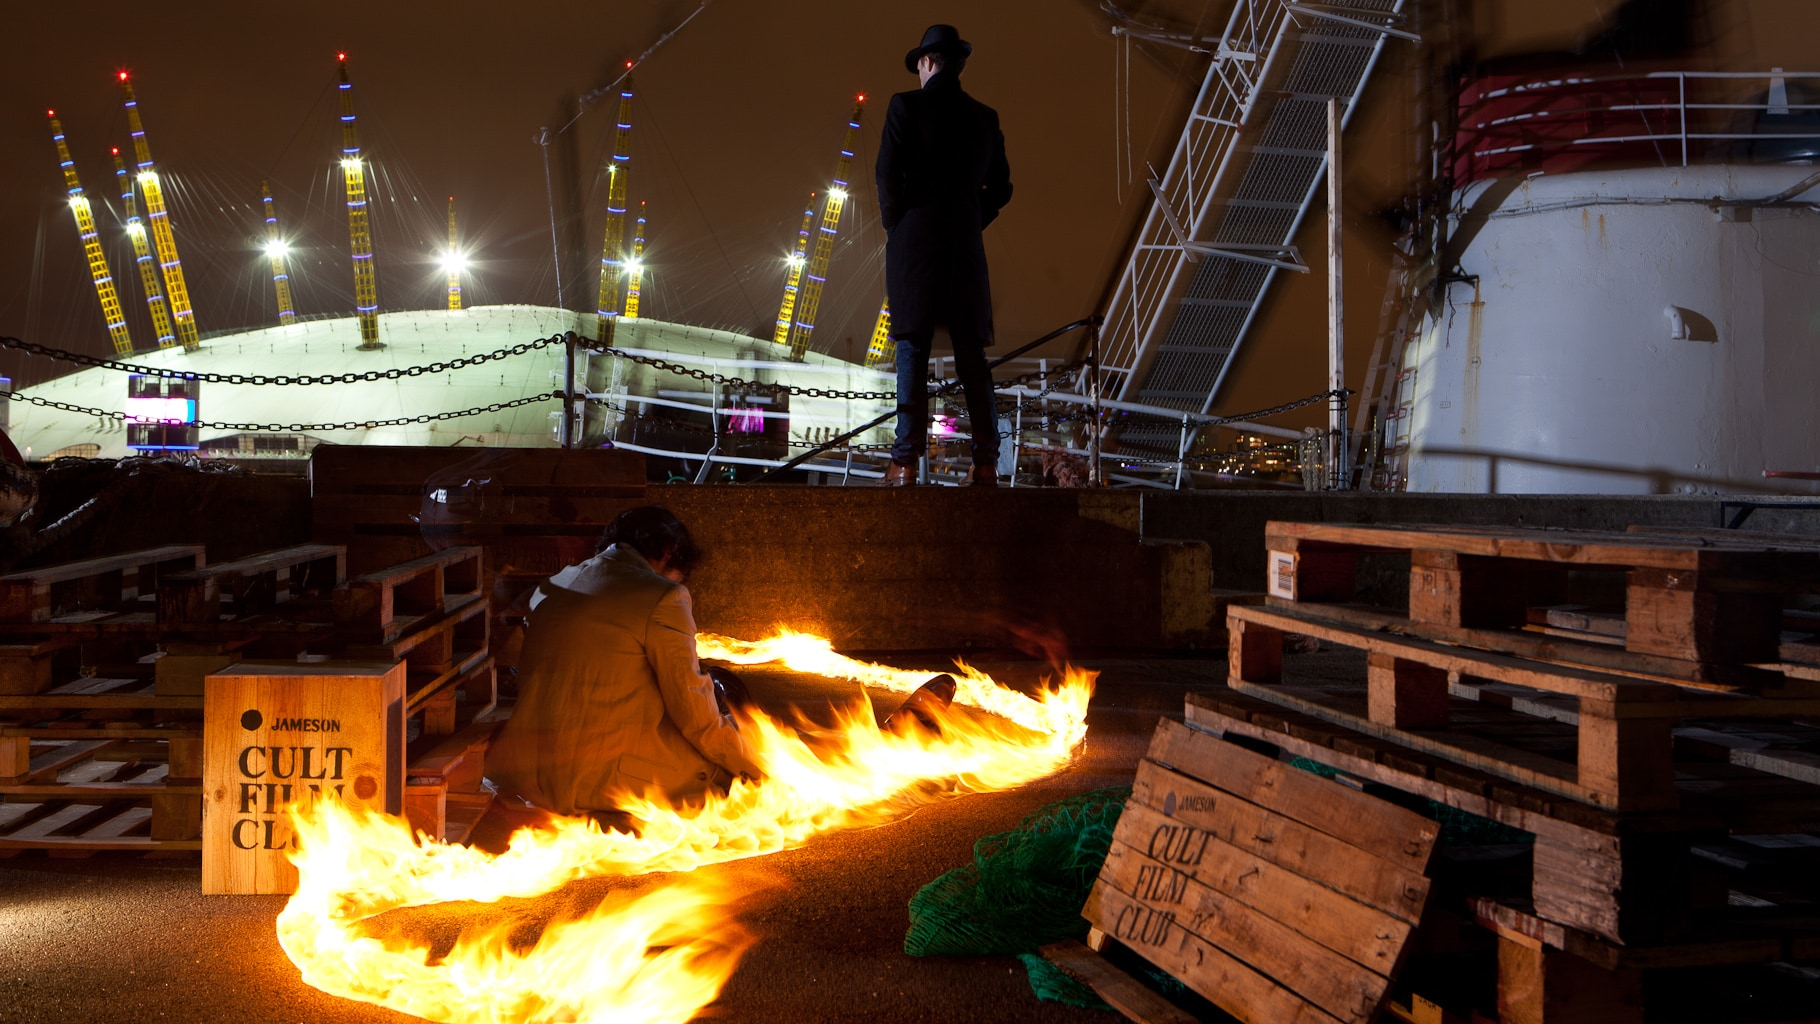 Keyser Sze comes to London dock for screening of The